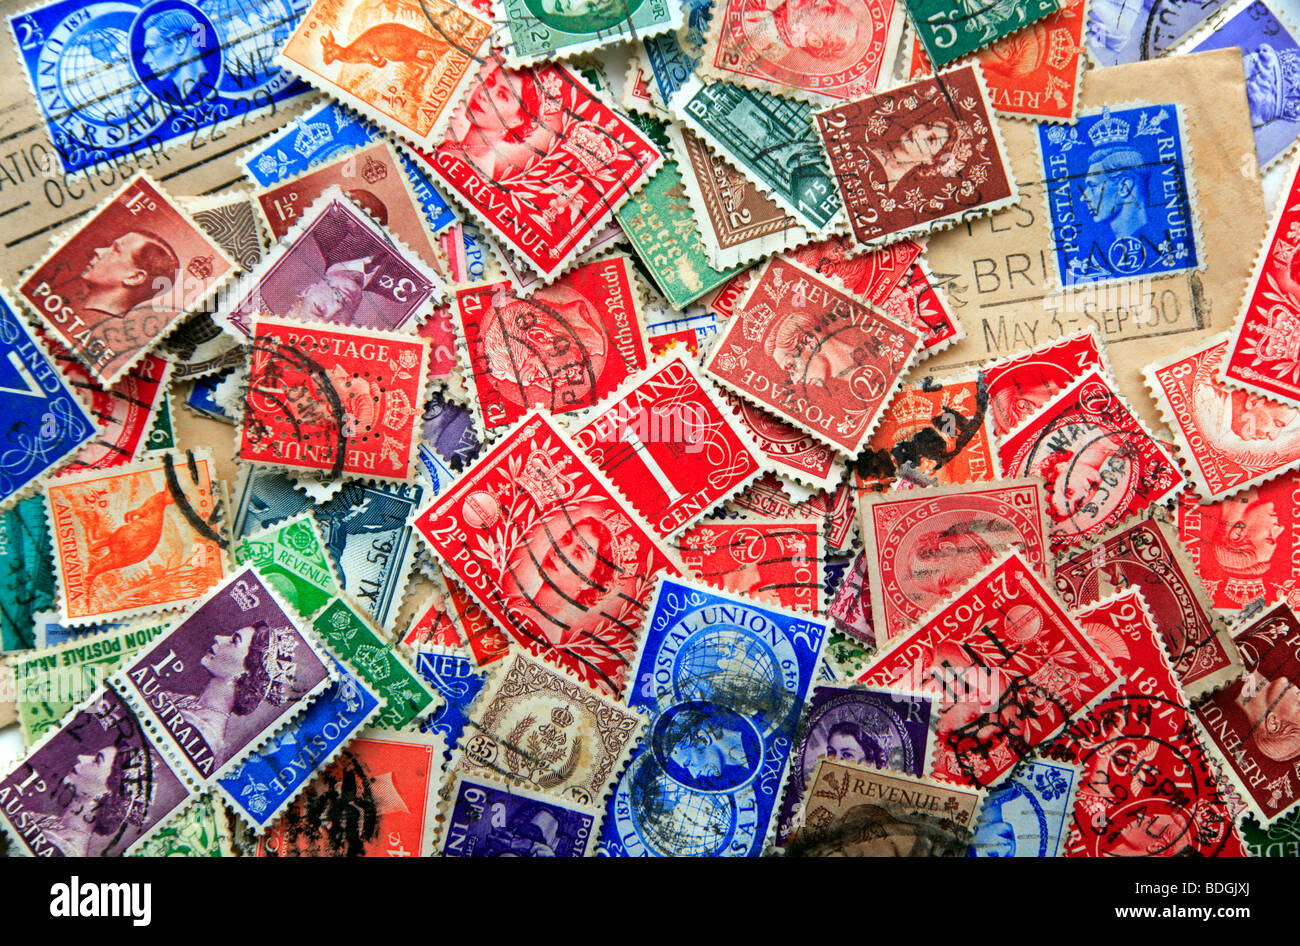 An assortment of used postage stamps for stamp collecting. - Stock Image